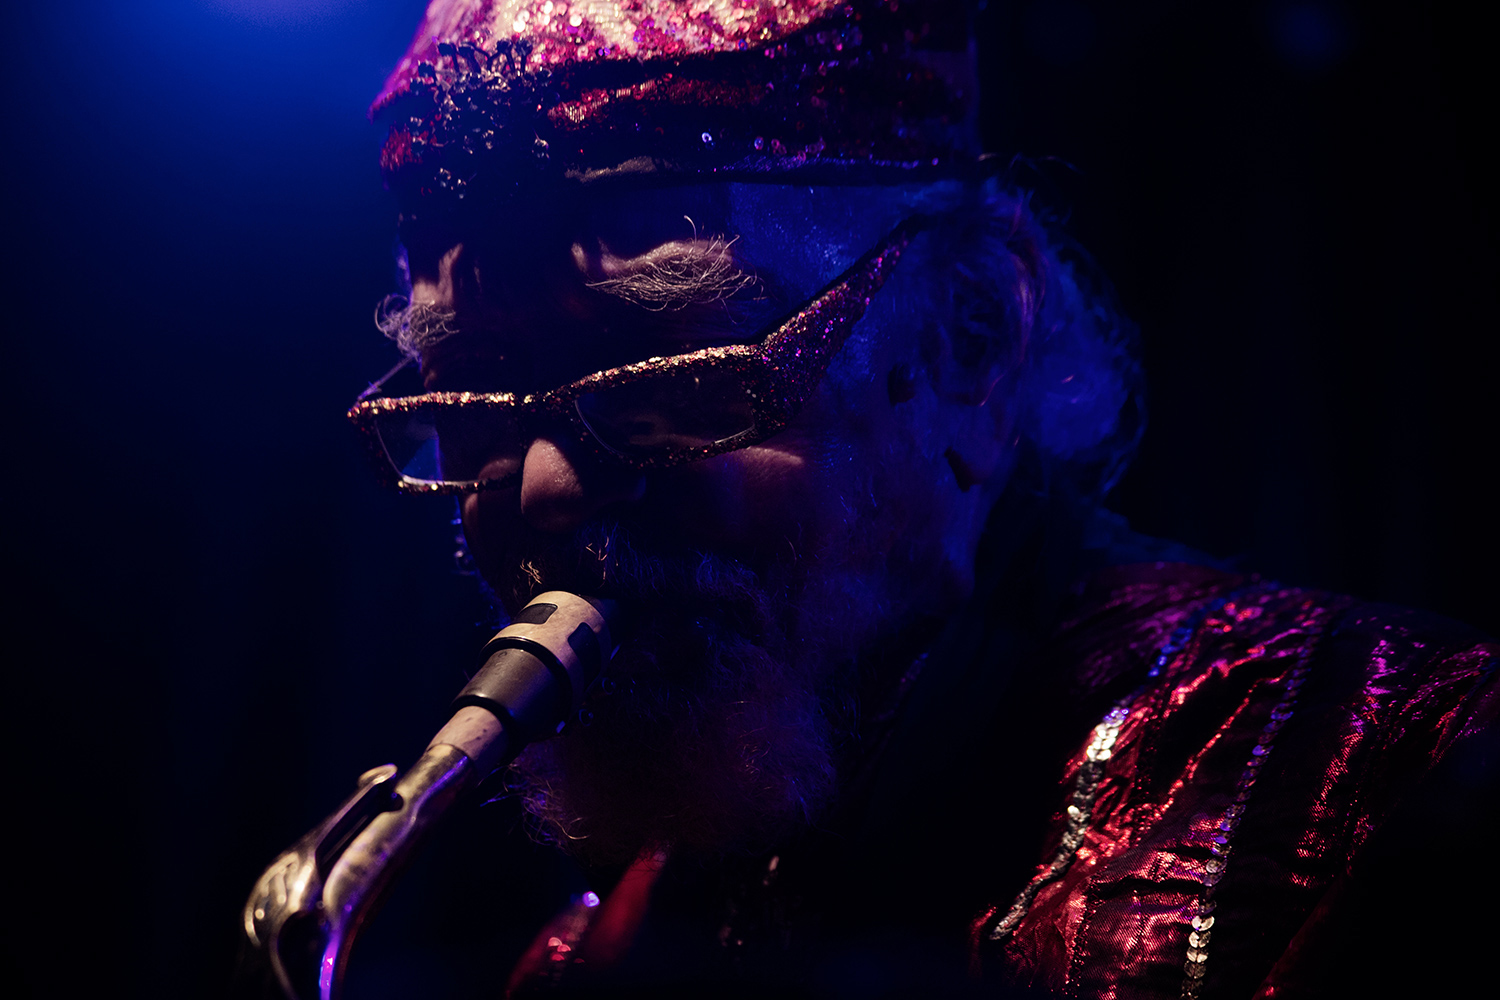 Sun Ra Arkestra directed by Marshall Allen by Laurent Orseau - Concert - Les Ateliers Claus - Brussels, Belgium #23